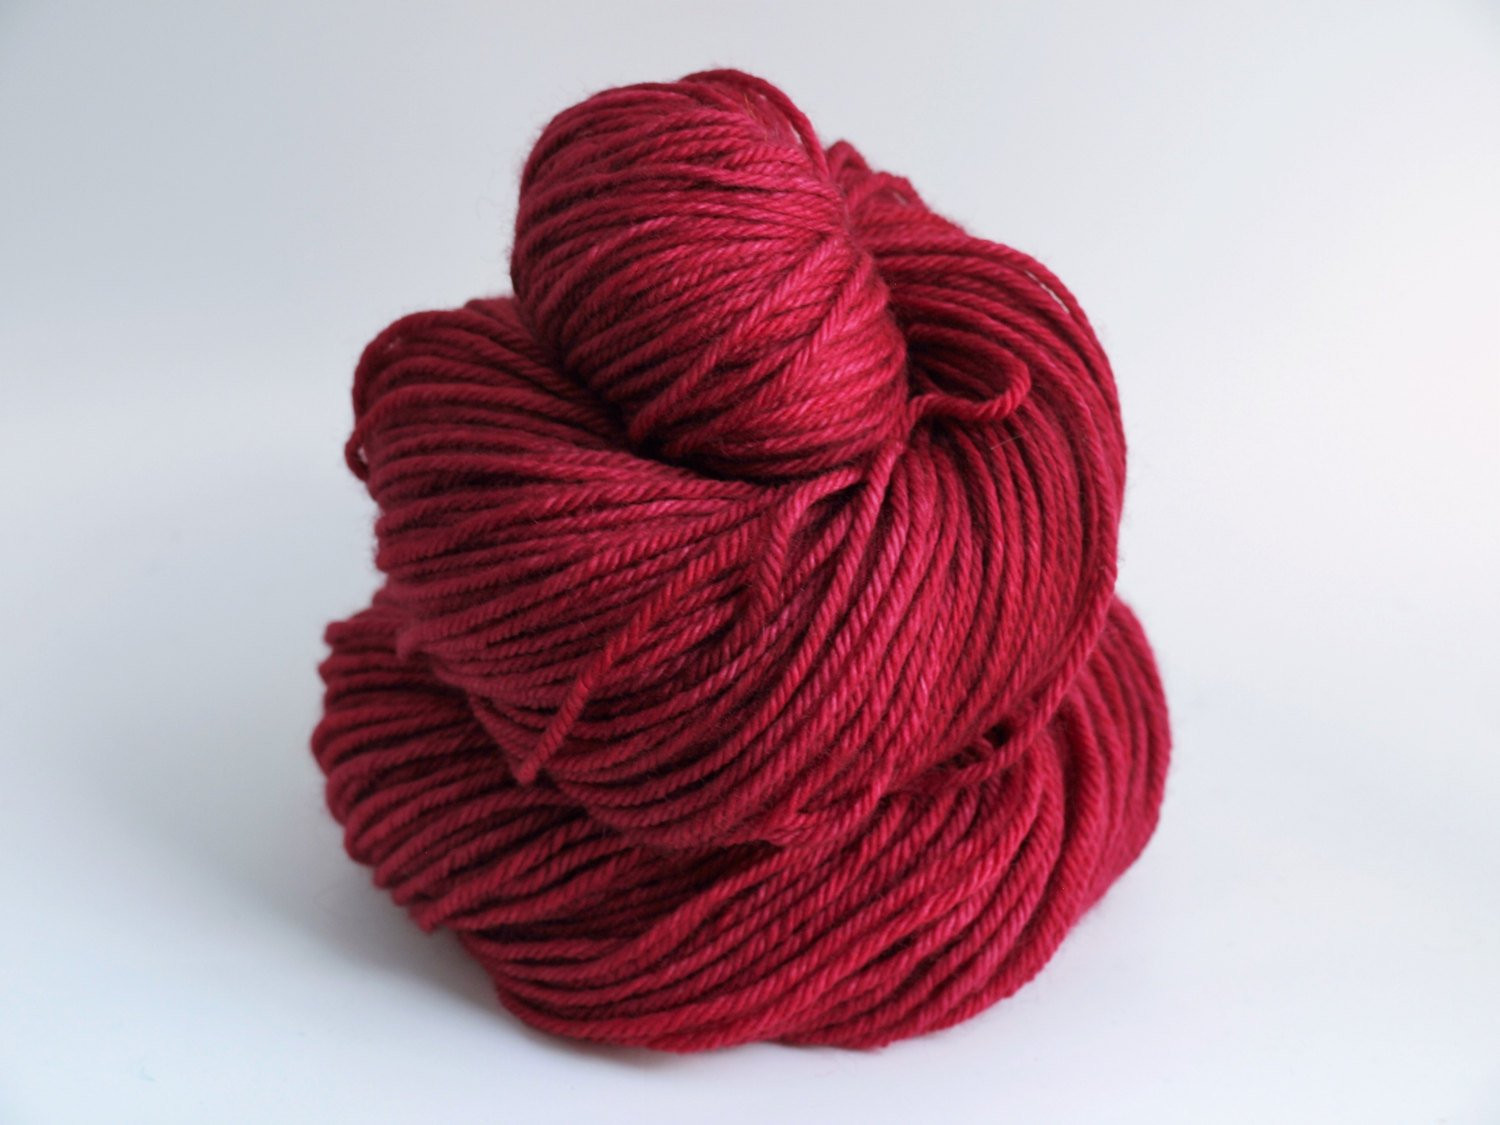 5 Weight Yarn Awesome Hand Dyed Worsted Weight Yarn 218 Yards Super Wash Merino Of Charming 47 Images 5 Weight Yarn